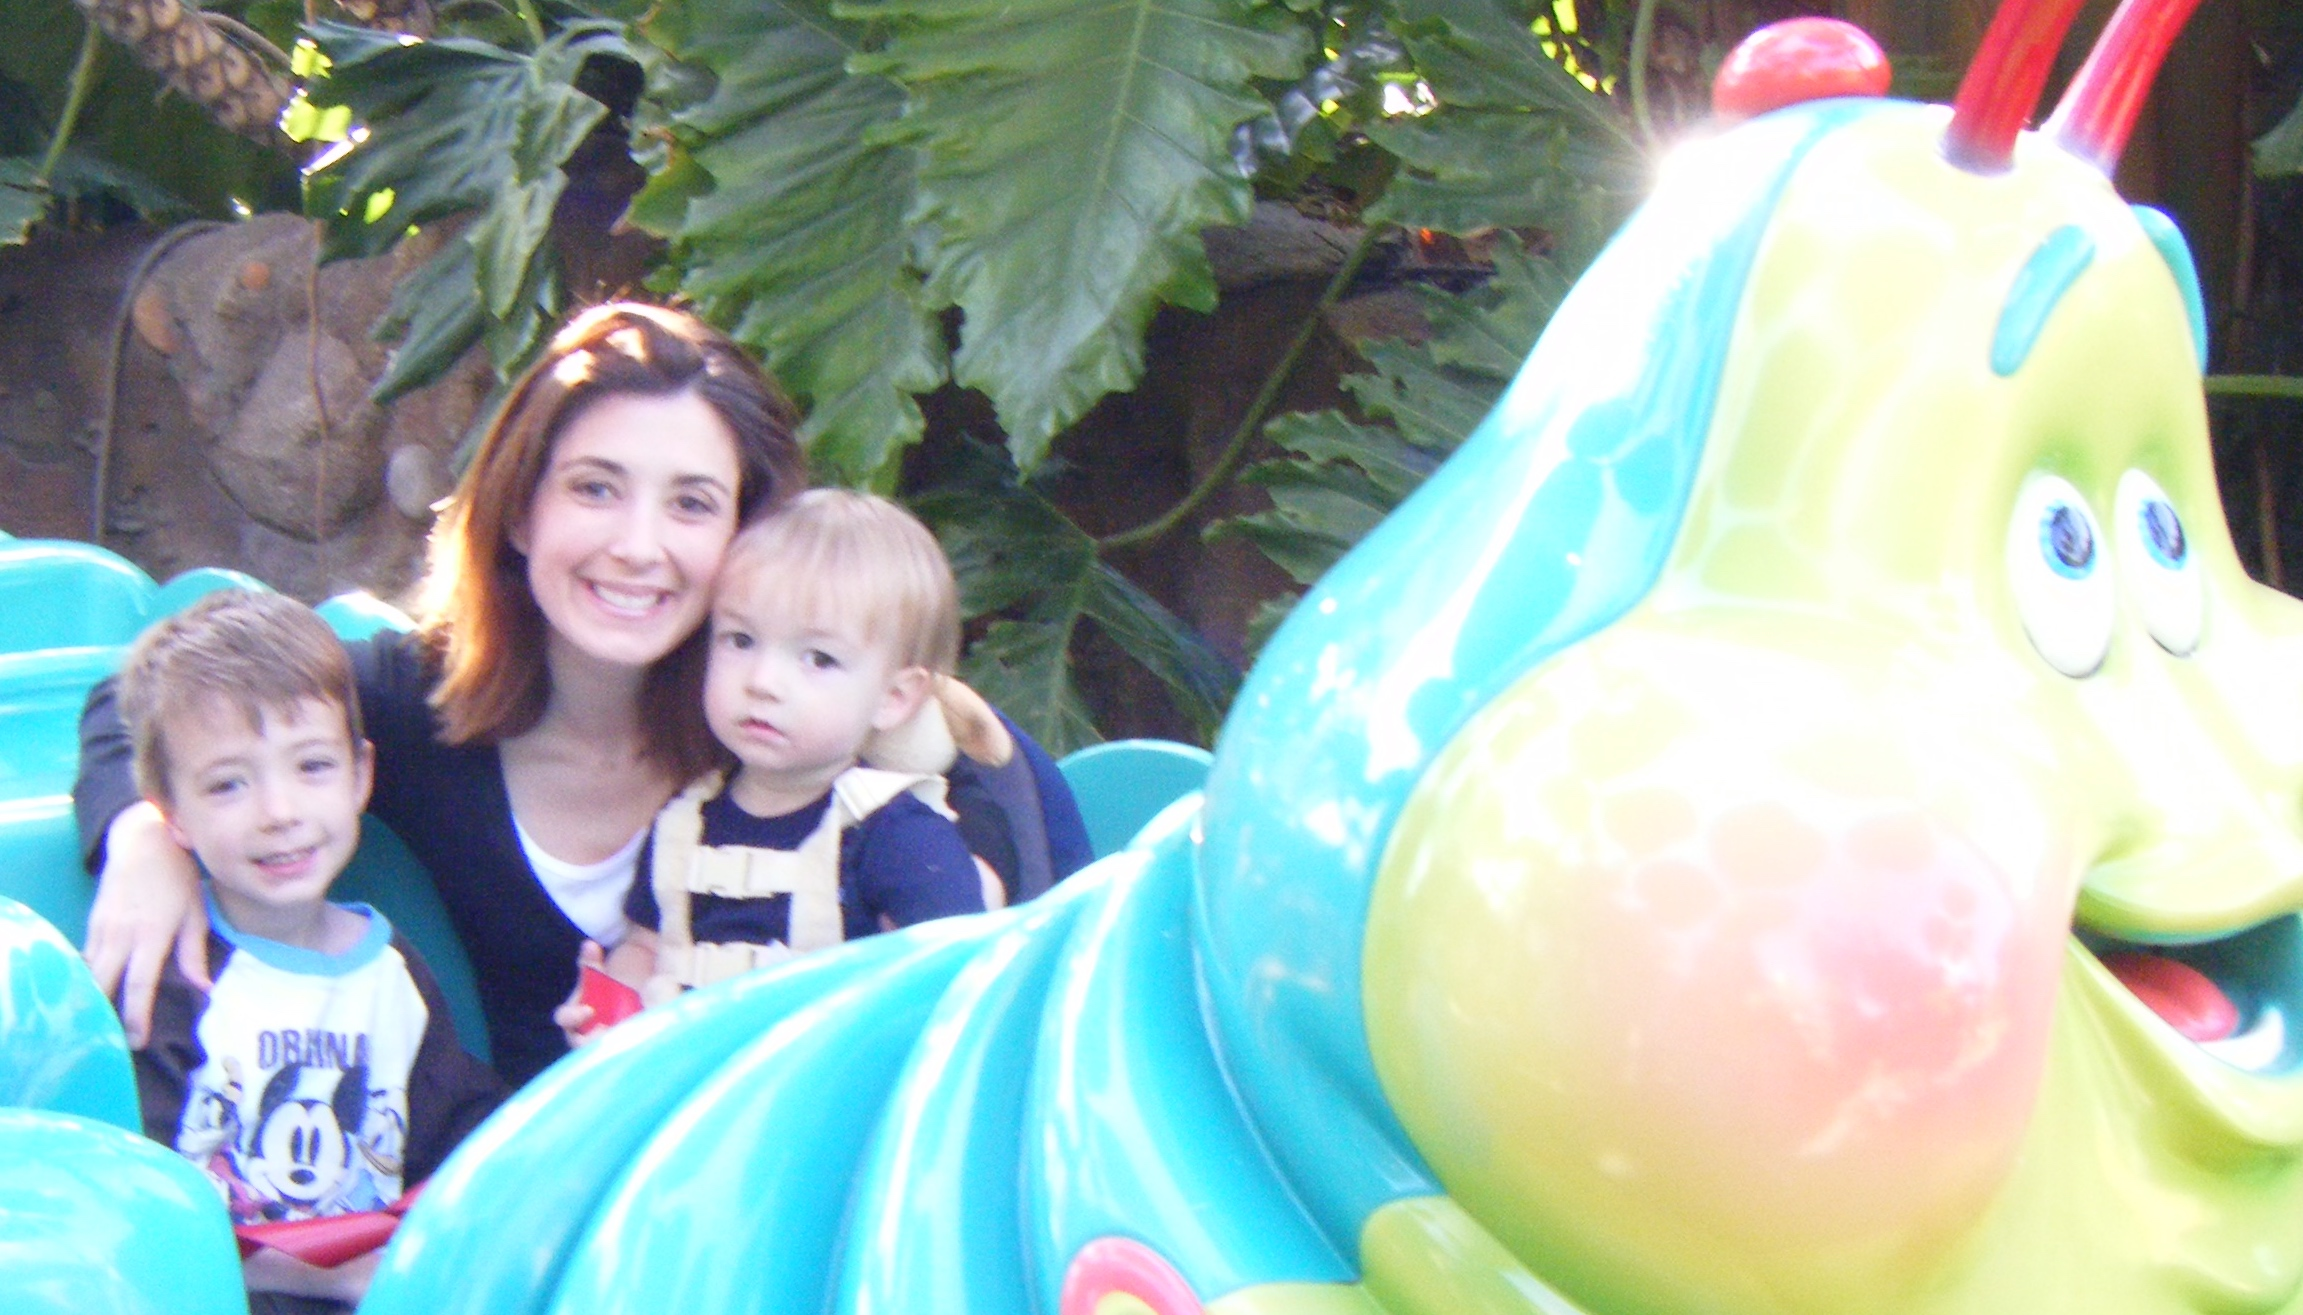 What Rides Can Babies And Toddlers Go On At Disneyland And Disney California Adventure Park